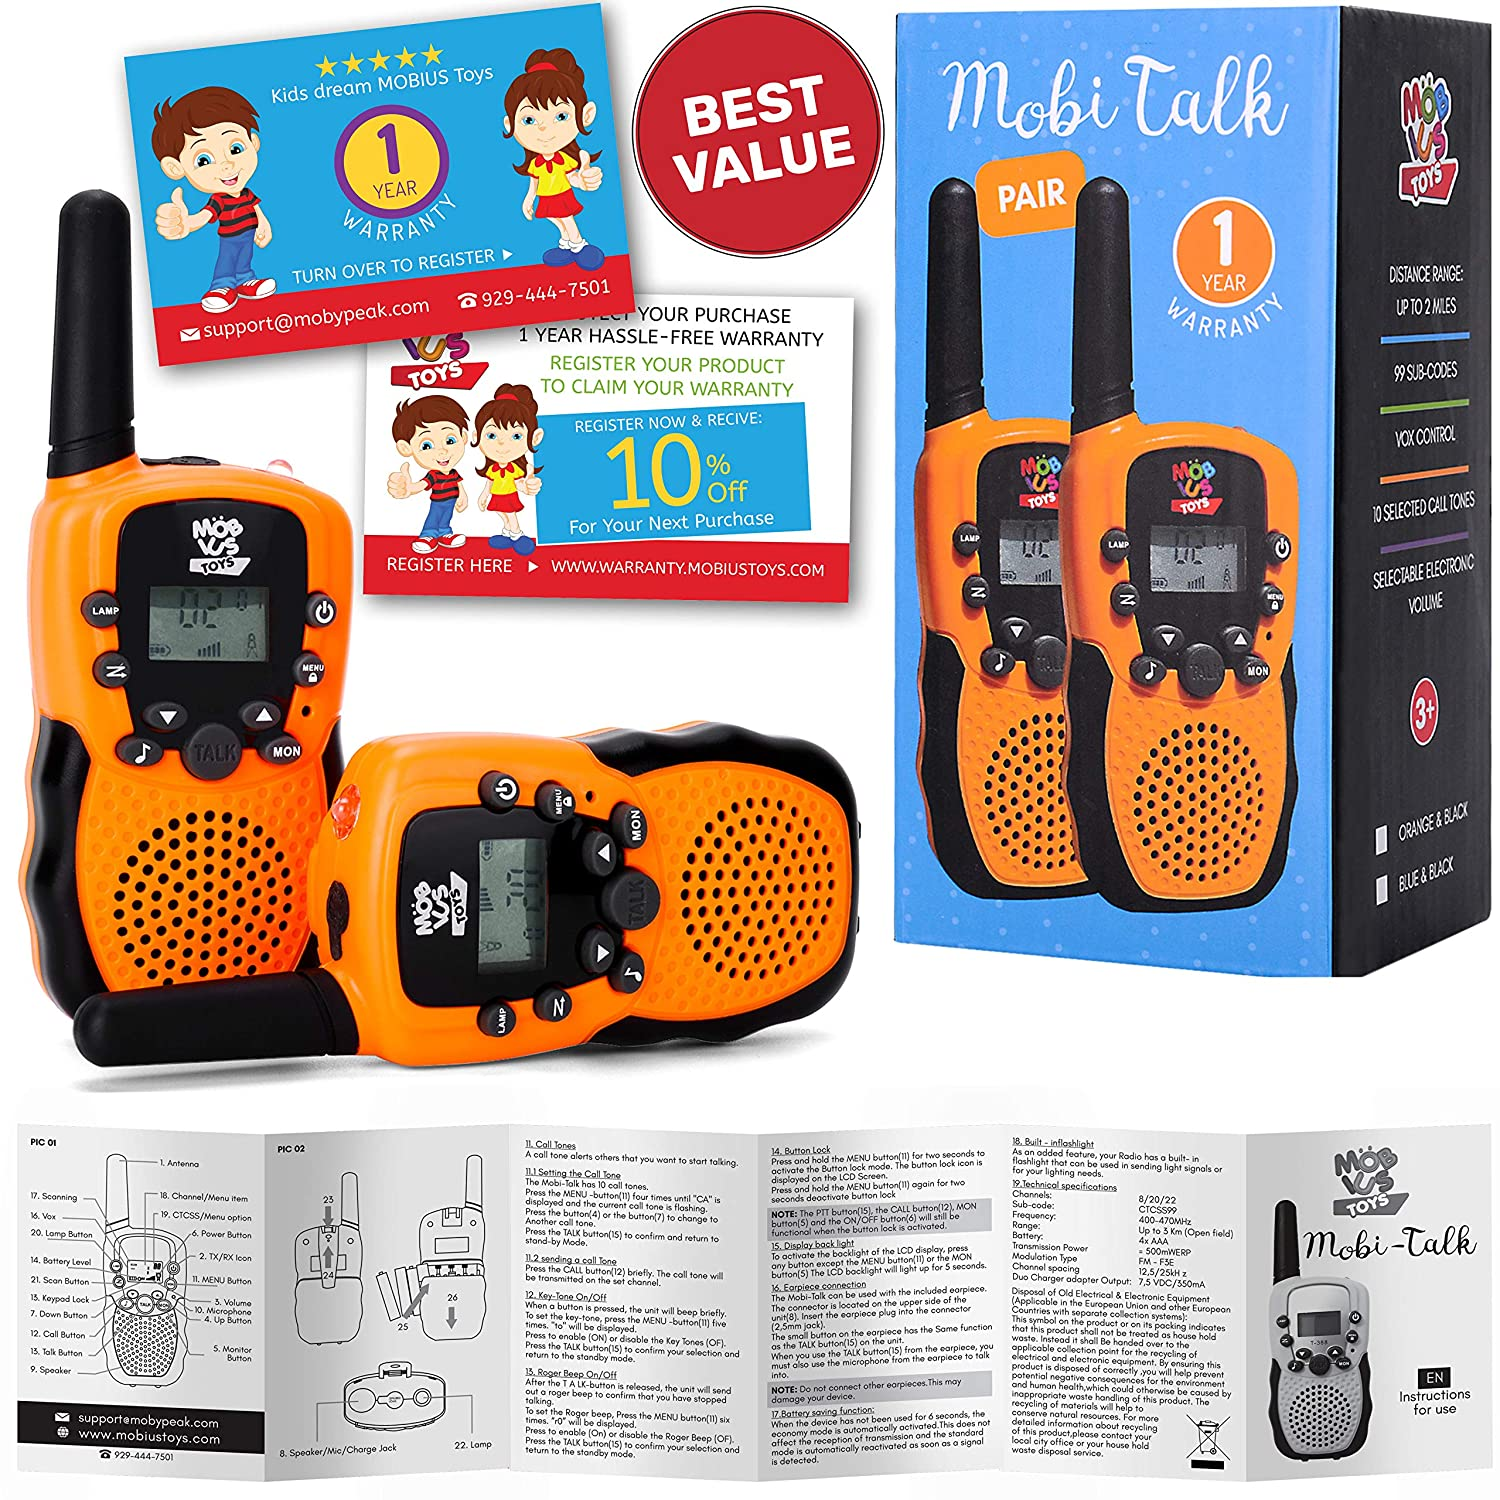 Walkie Talkies for Kids - (Vox Box) Voice Activated Walkie Talkies Toy for Kids